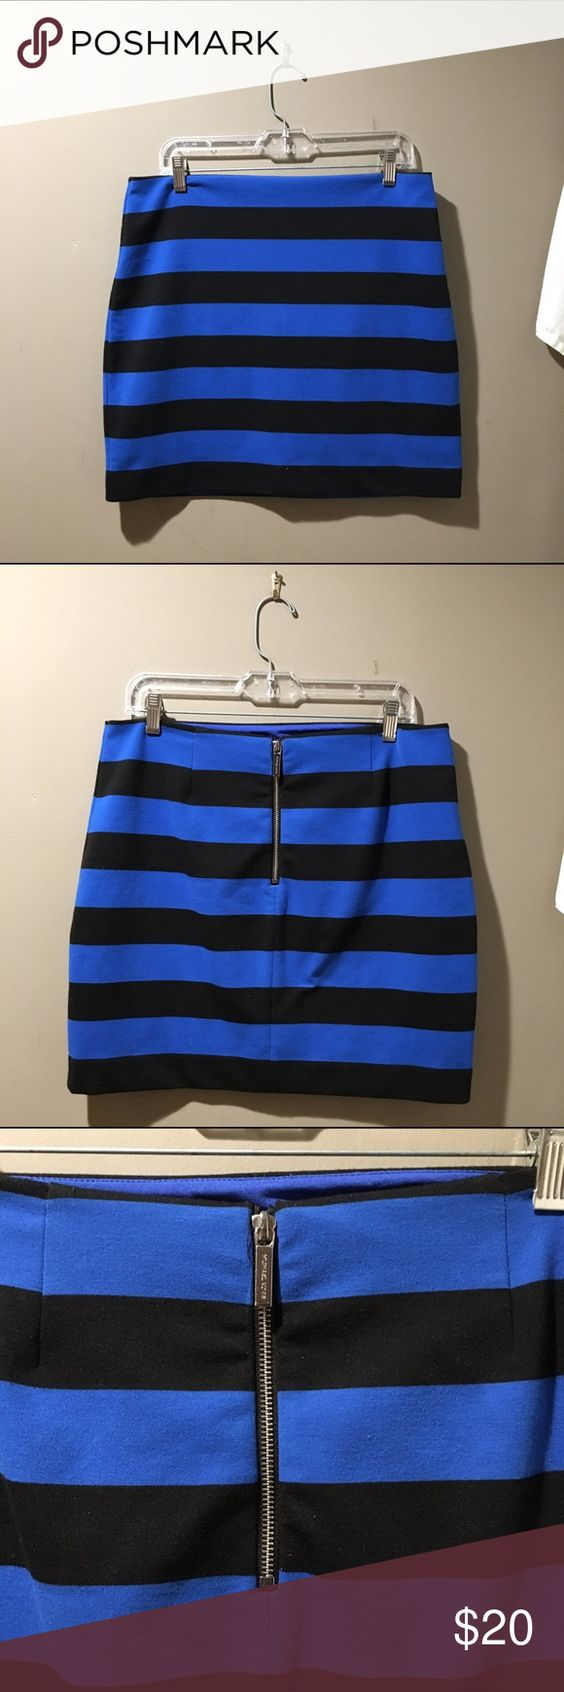 Michael Kors Striped Black and Blue Skirt This skirt is so incredibly comfortable! From the Michael by Michael Kors line, this blue and black thick striped skirt is a thicker knit that has a good amount of stretch to it and is perfect to dress up or down. Wear it casually or dress it up for the office with heels and a blazer, the options are endless. Incredibly comfortable, with an exposed back zipper and in good used condition, this is a great addition to any closet! Michael Kors Skirts…